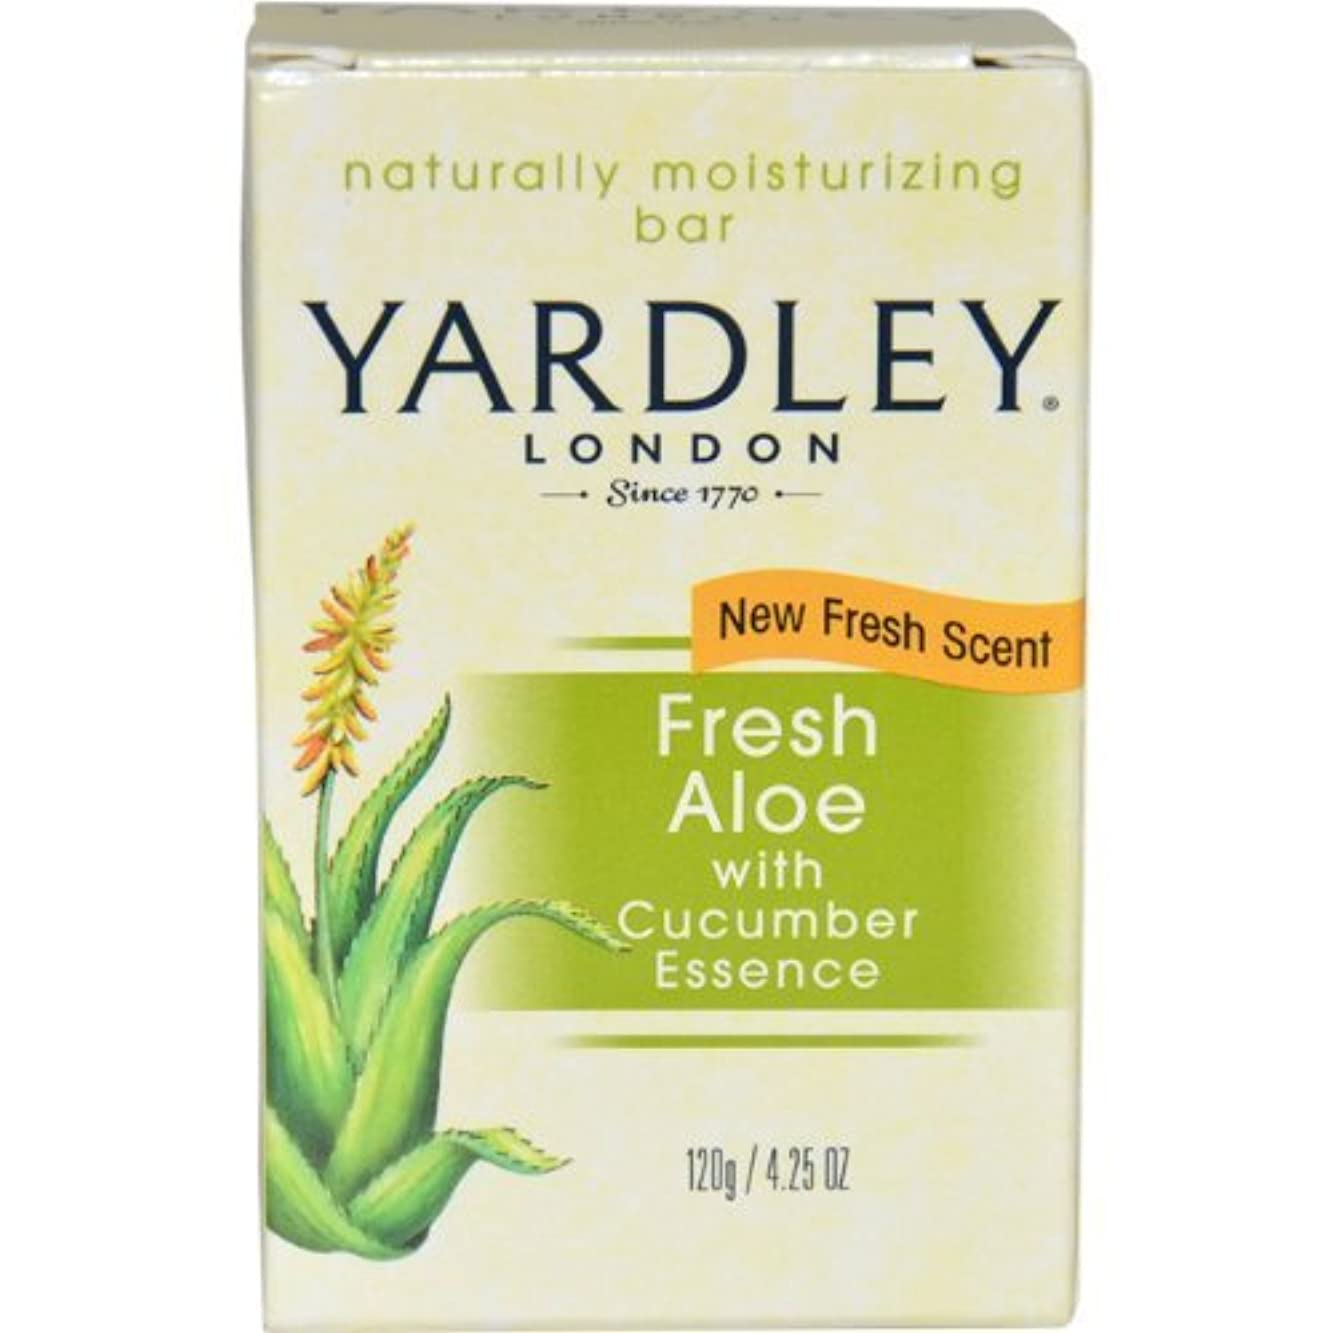 Fresh Aloe with Cucumber Essence Bar Soap Soap Unisex by Yardley, 4.25 Ounce (Packaging May Vary) by Yardley [...